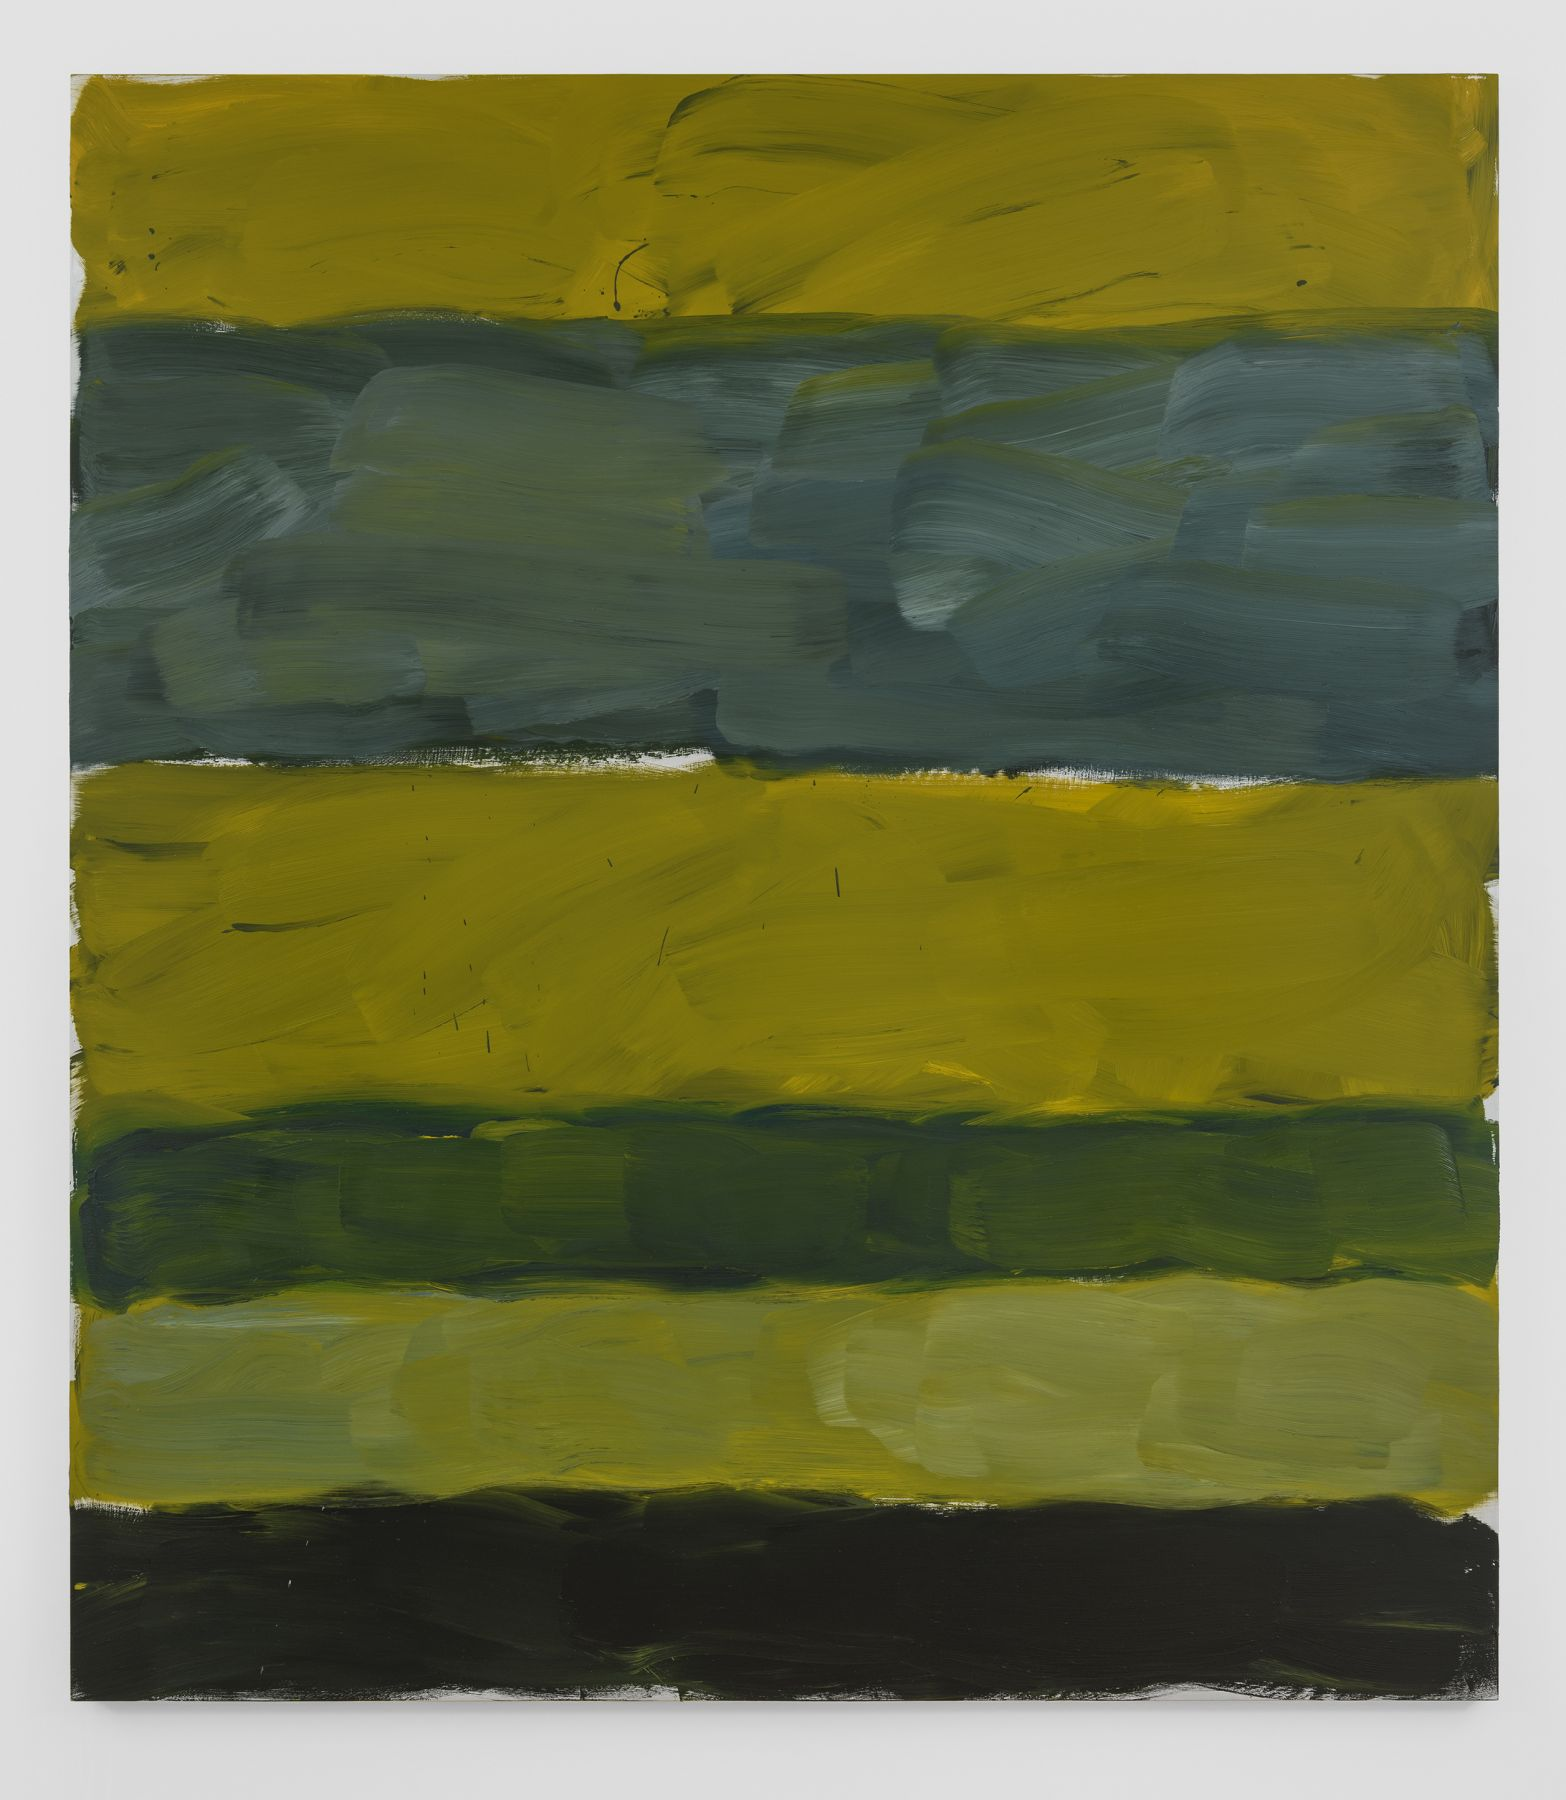 Sean Scully - Images